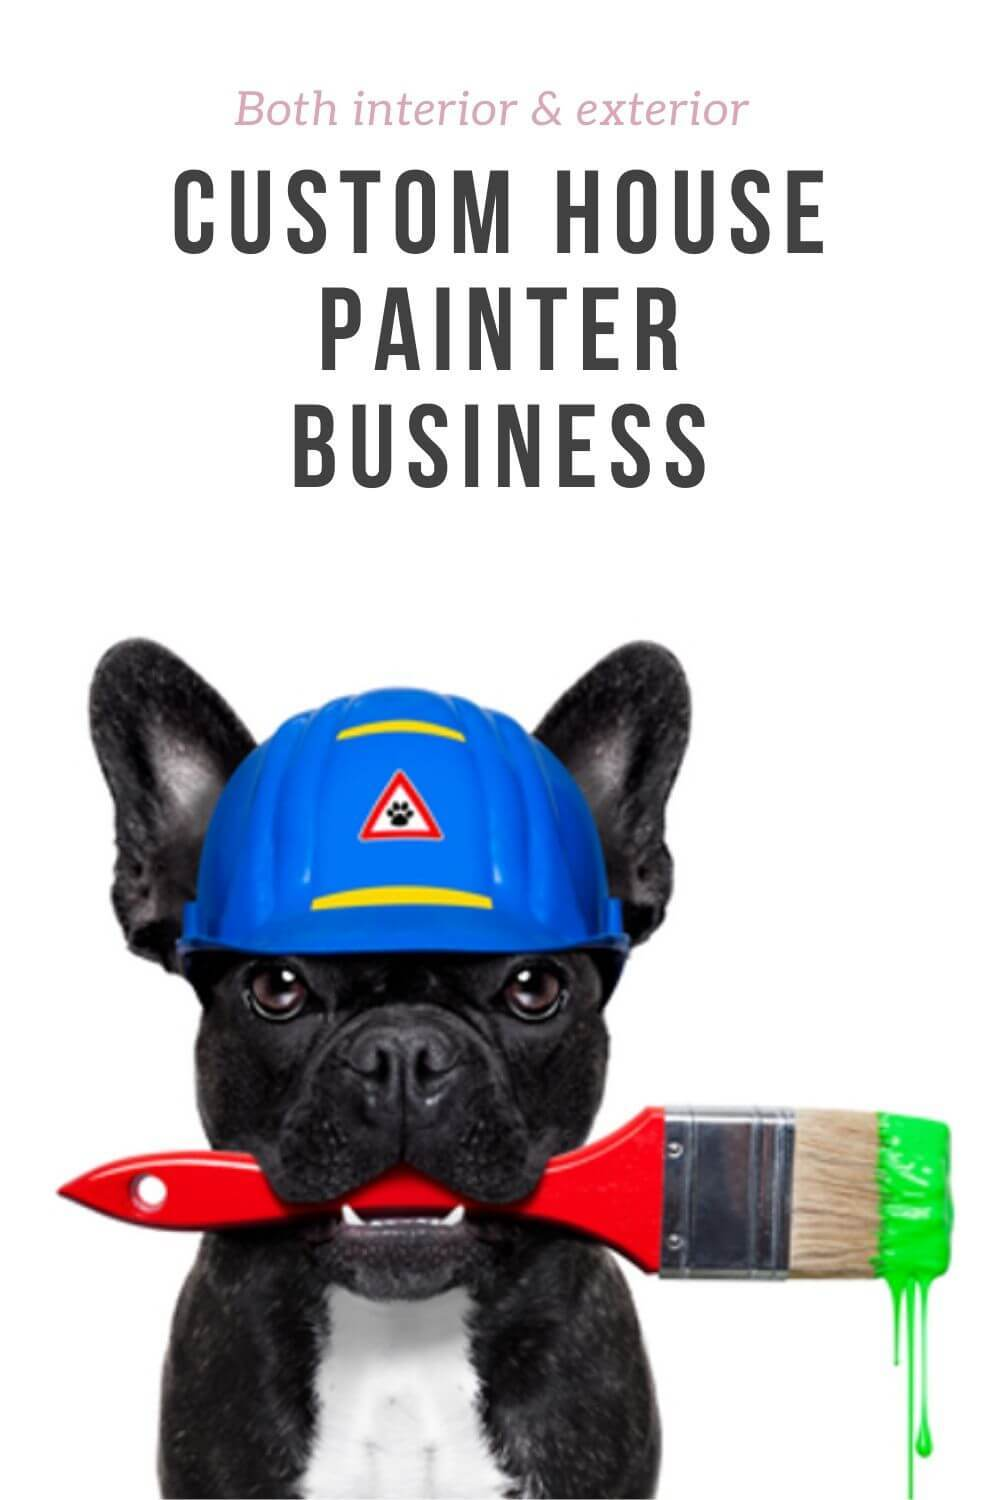 custome house painter business